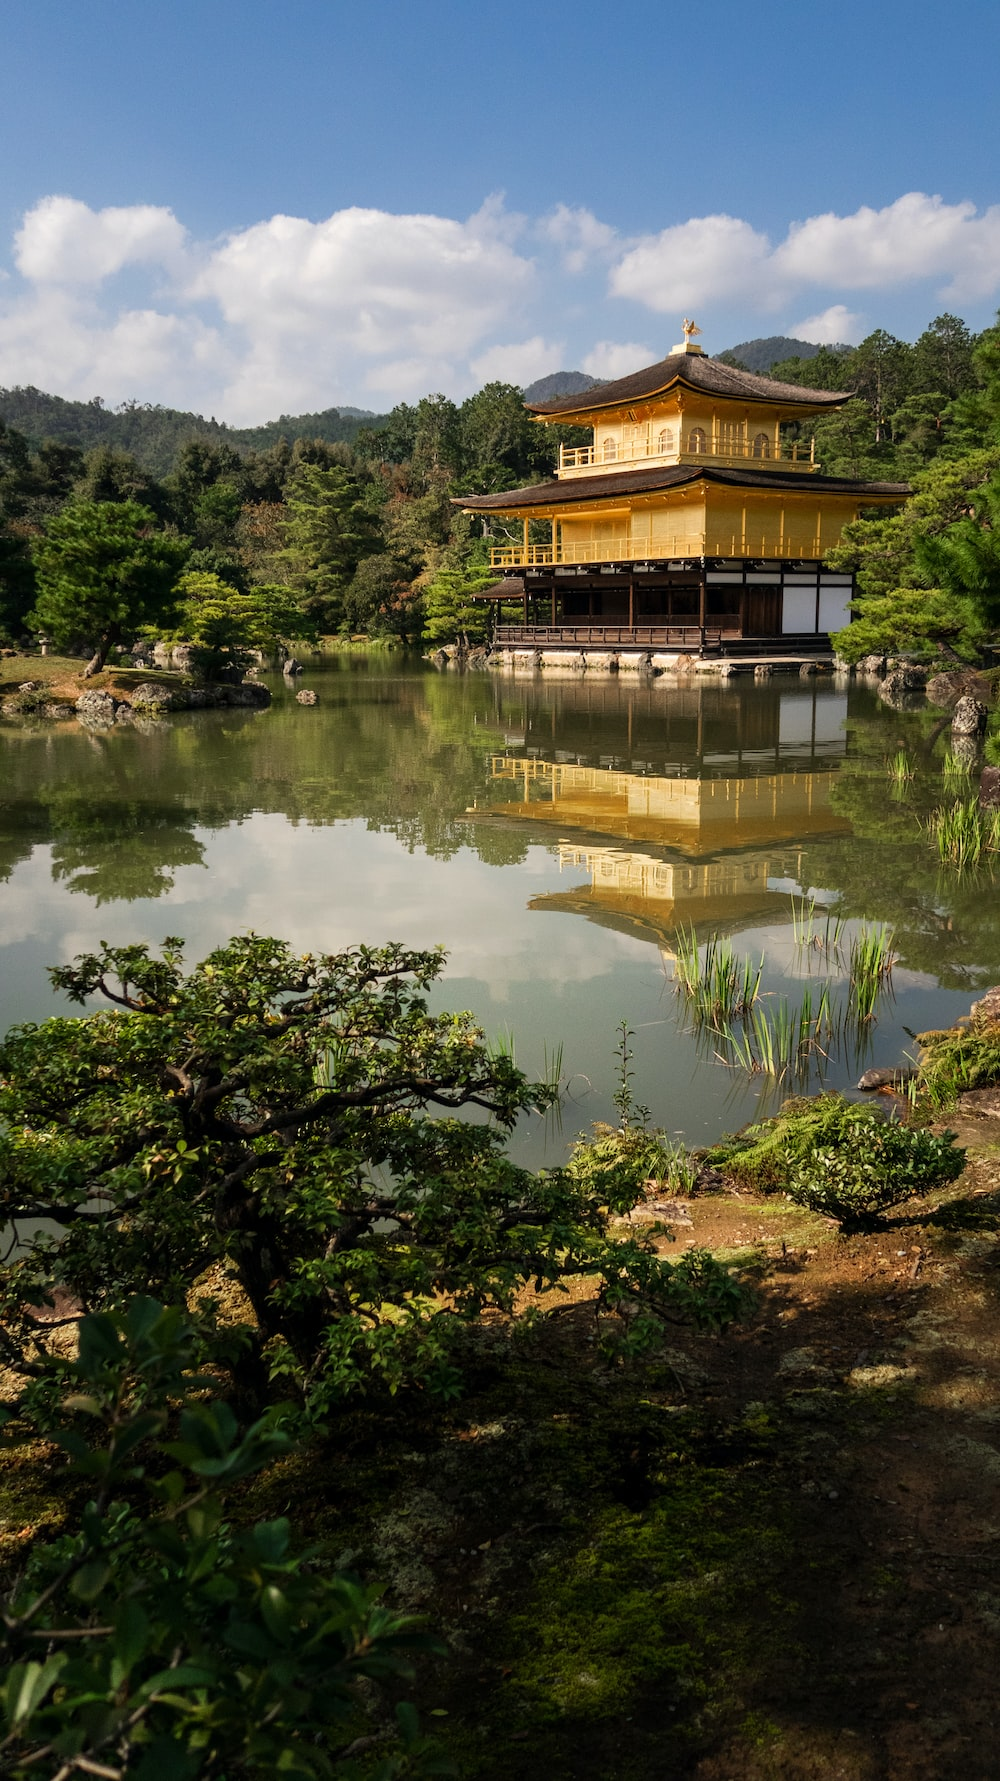 yellow temple near trees facing body of water